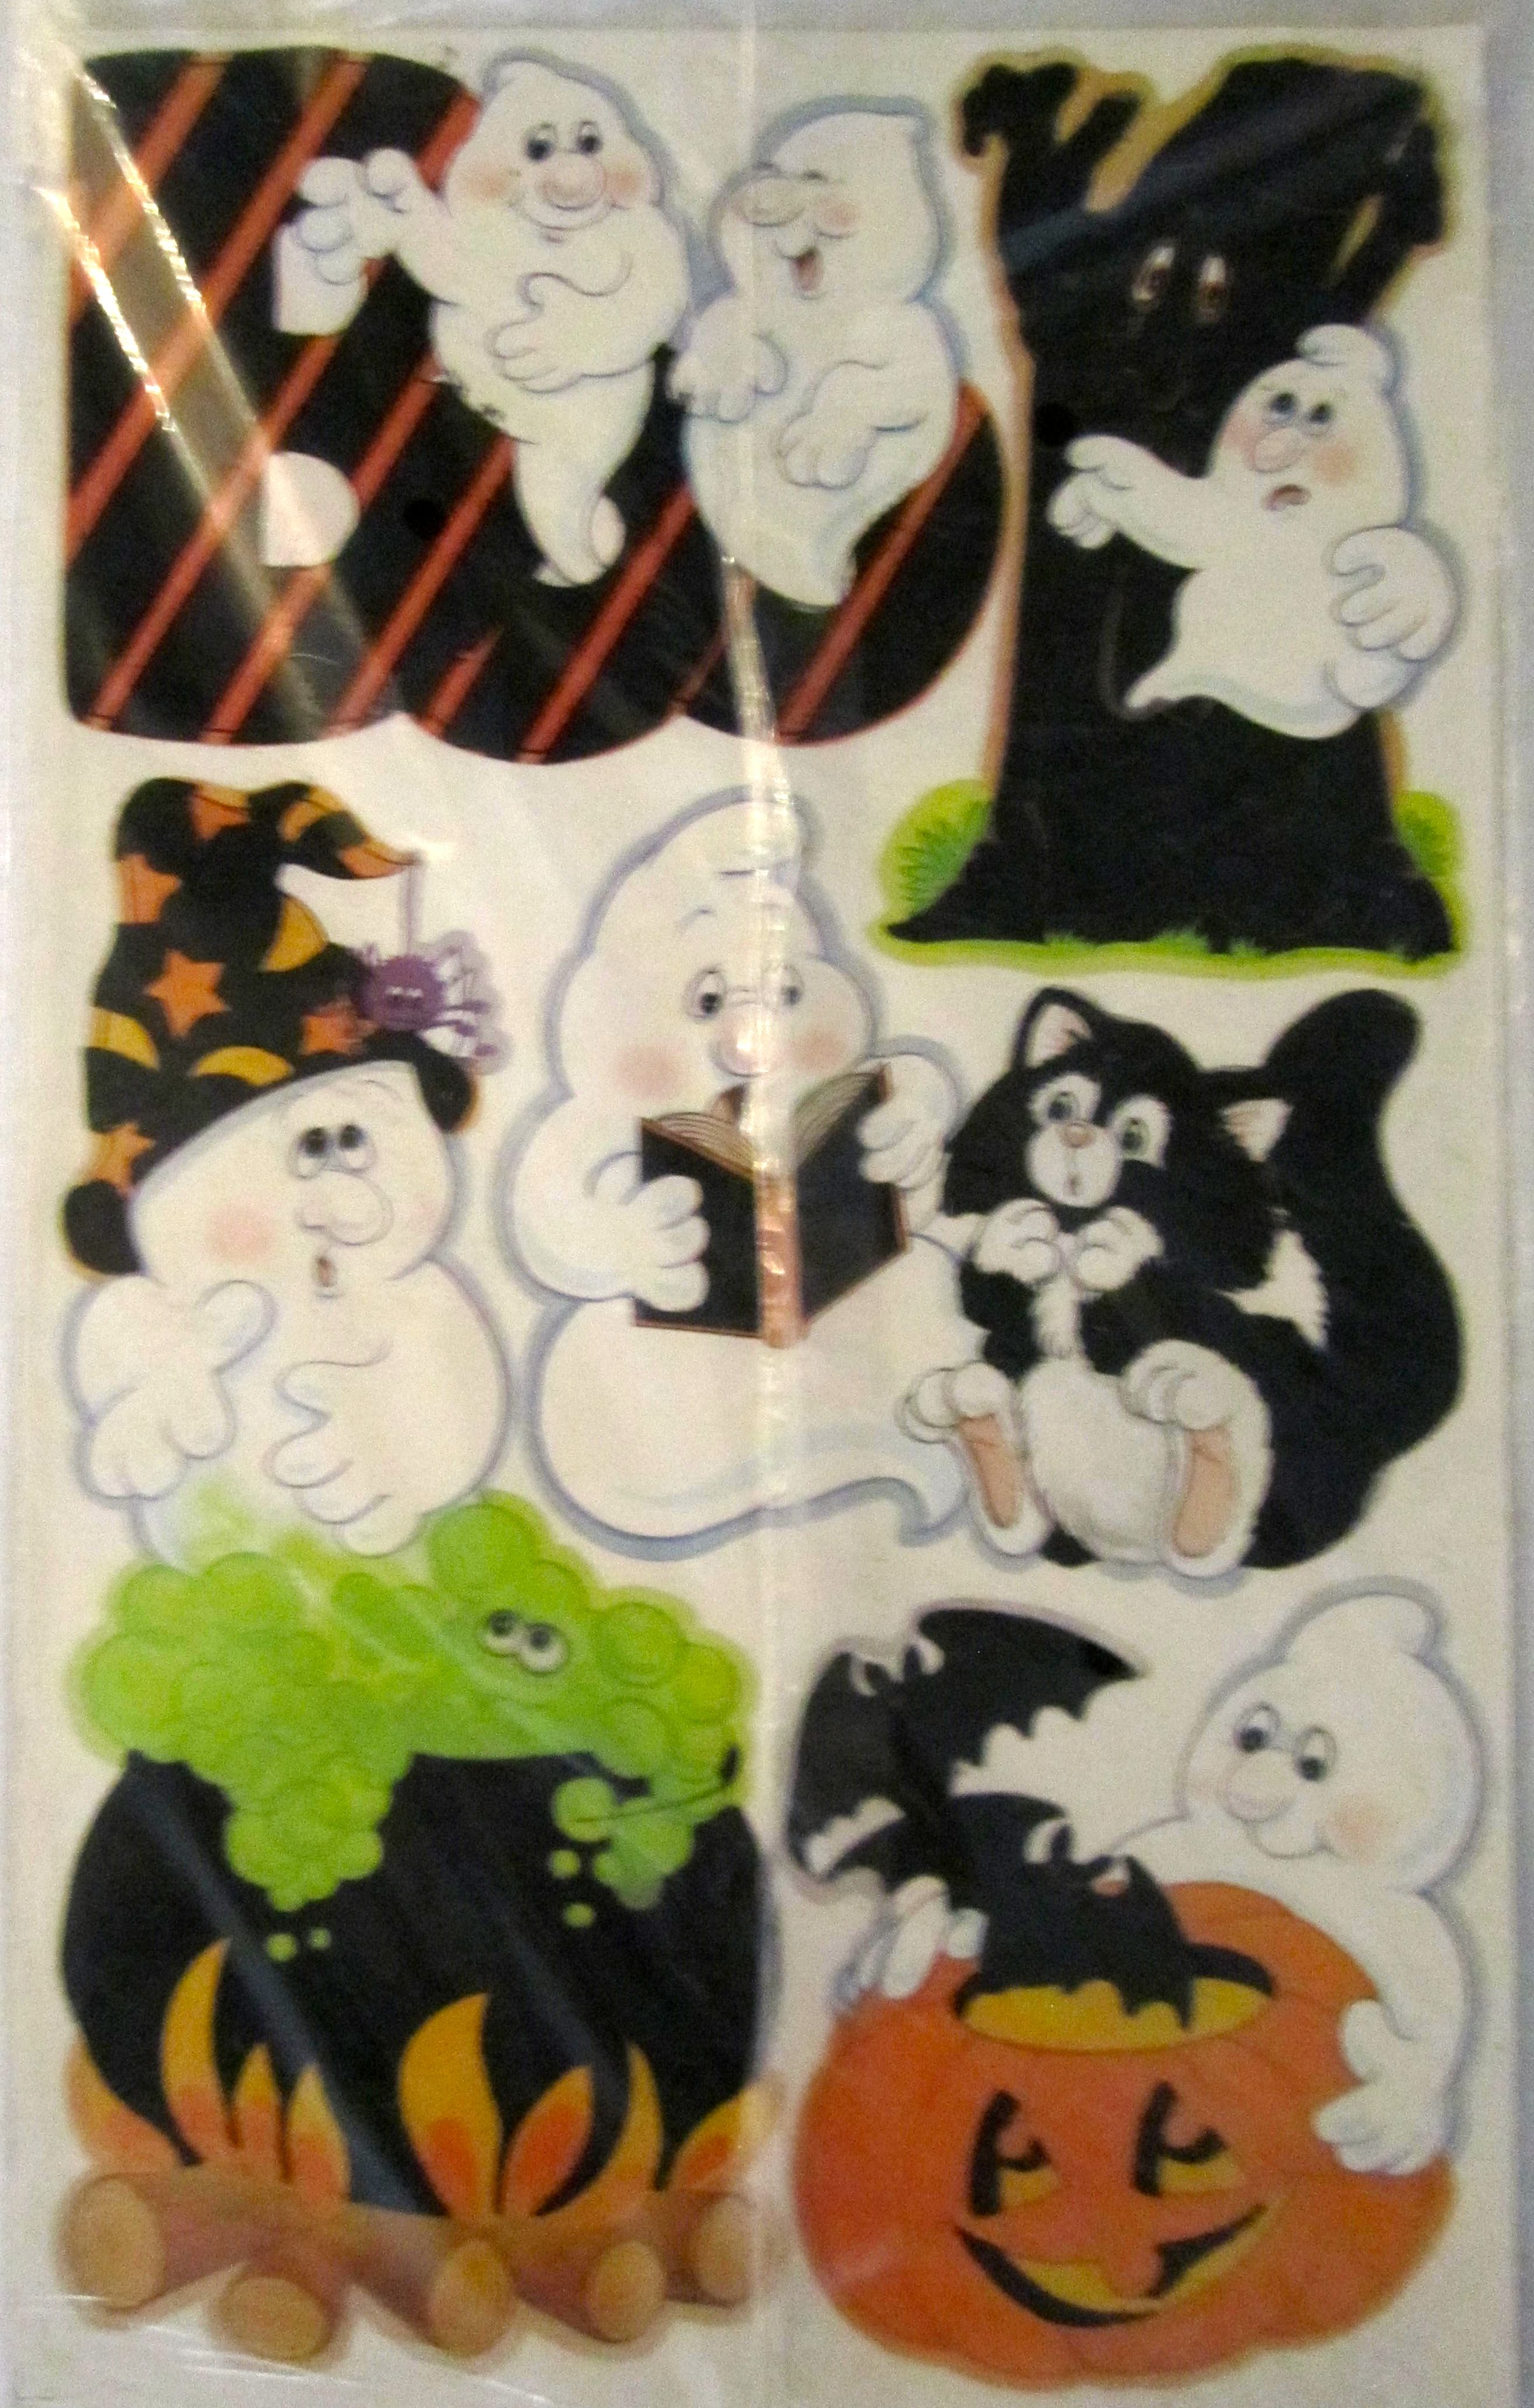 Part 2 Vintage Celo Velvety Flocked 13 Ghosts Press Outs From The Halloween DecorationsGhosts